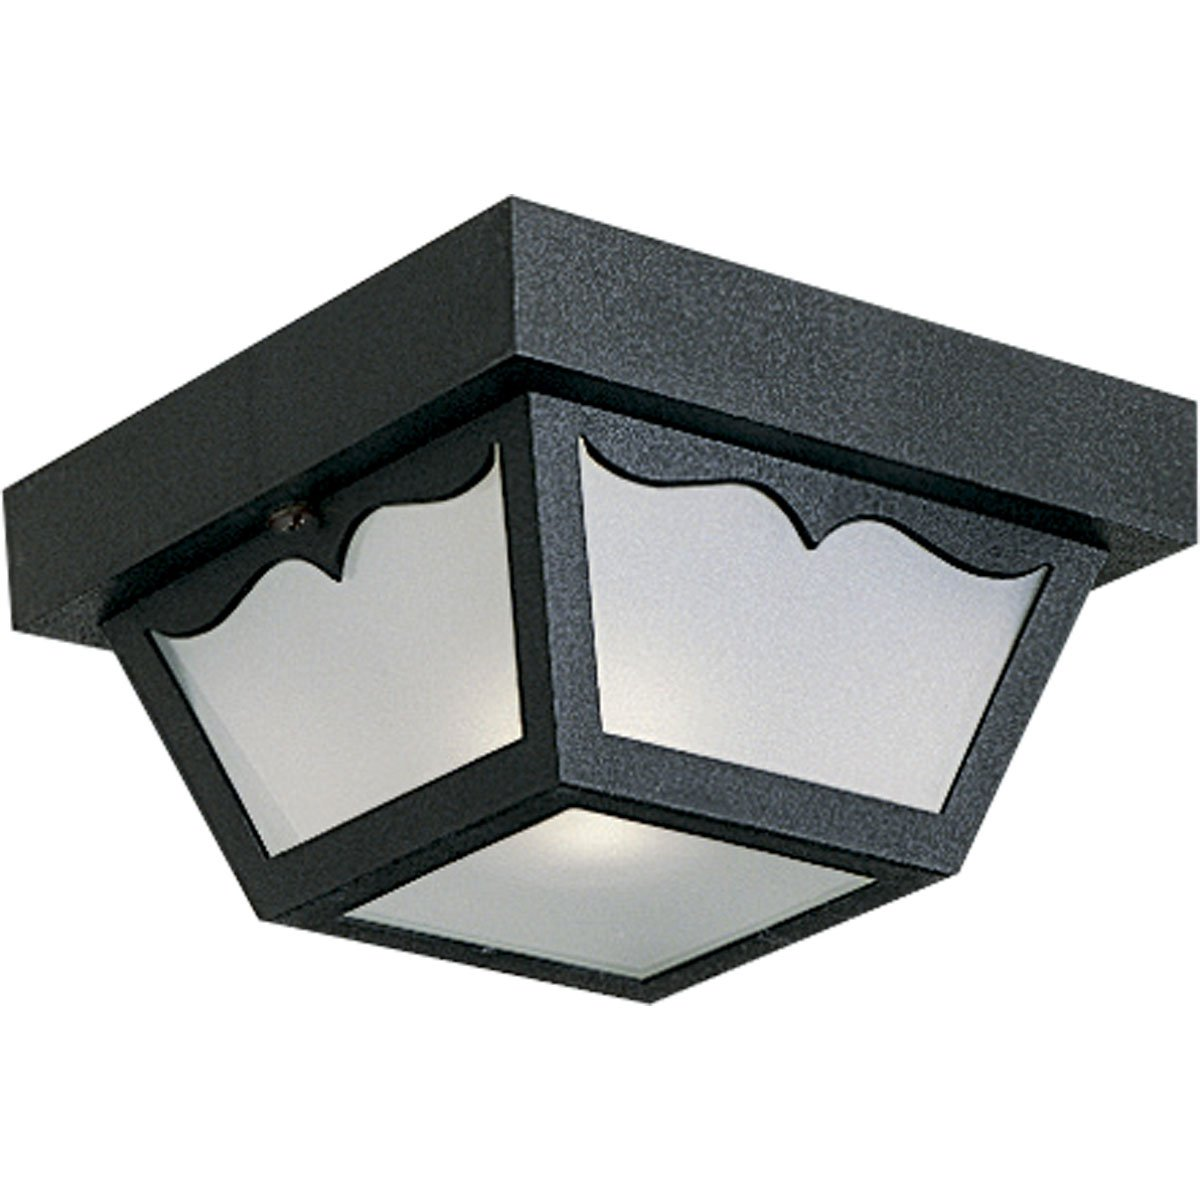 Progress Lighting P5744-31 Non-Metallic Ceiling Light with 1-Piece White Acrylic Diffuser, Black by Progress Lighting (Image #1)